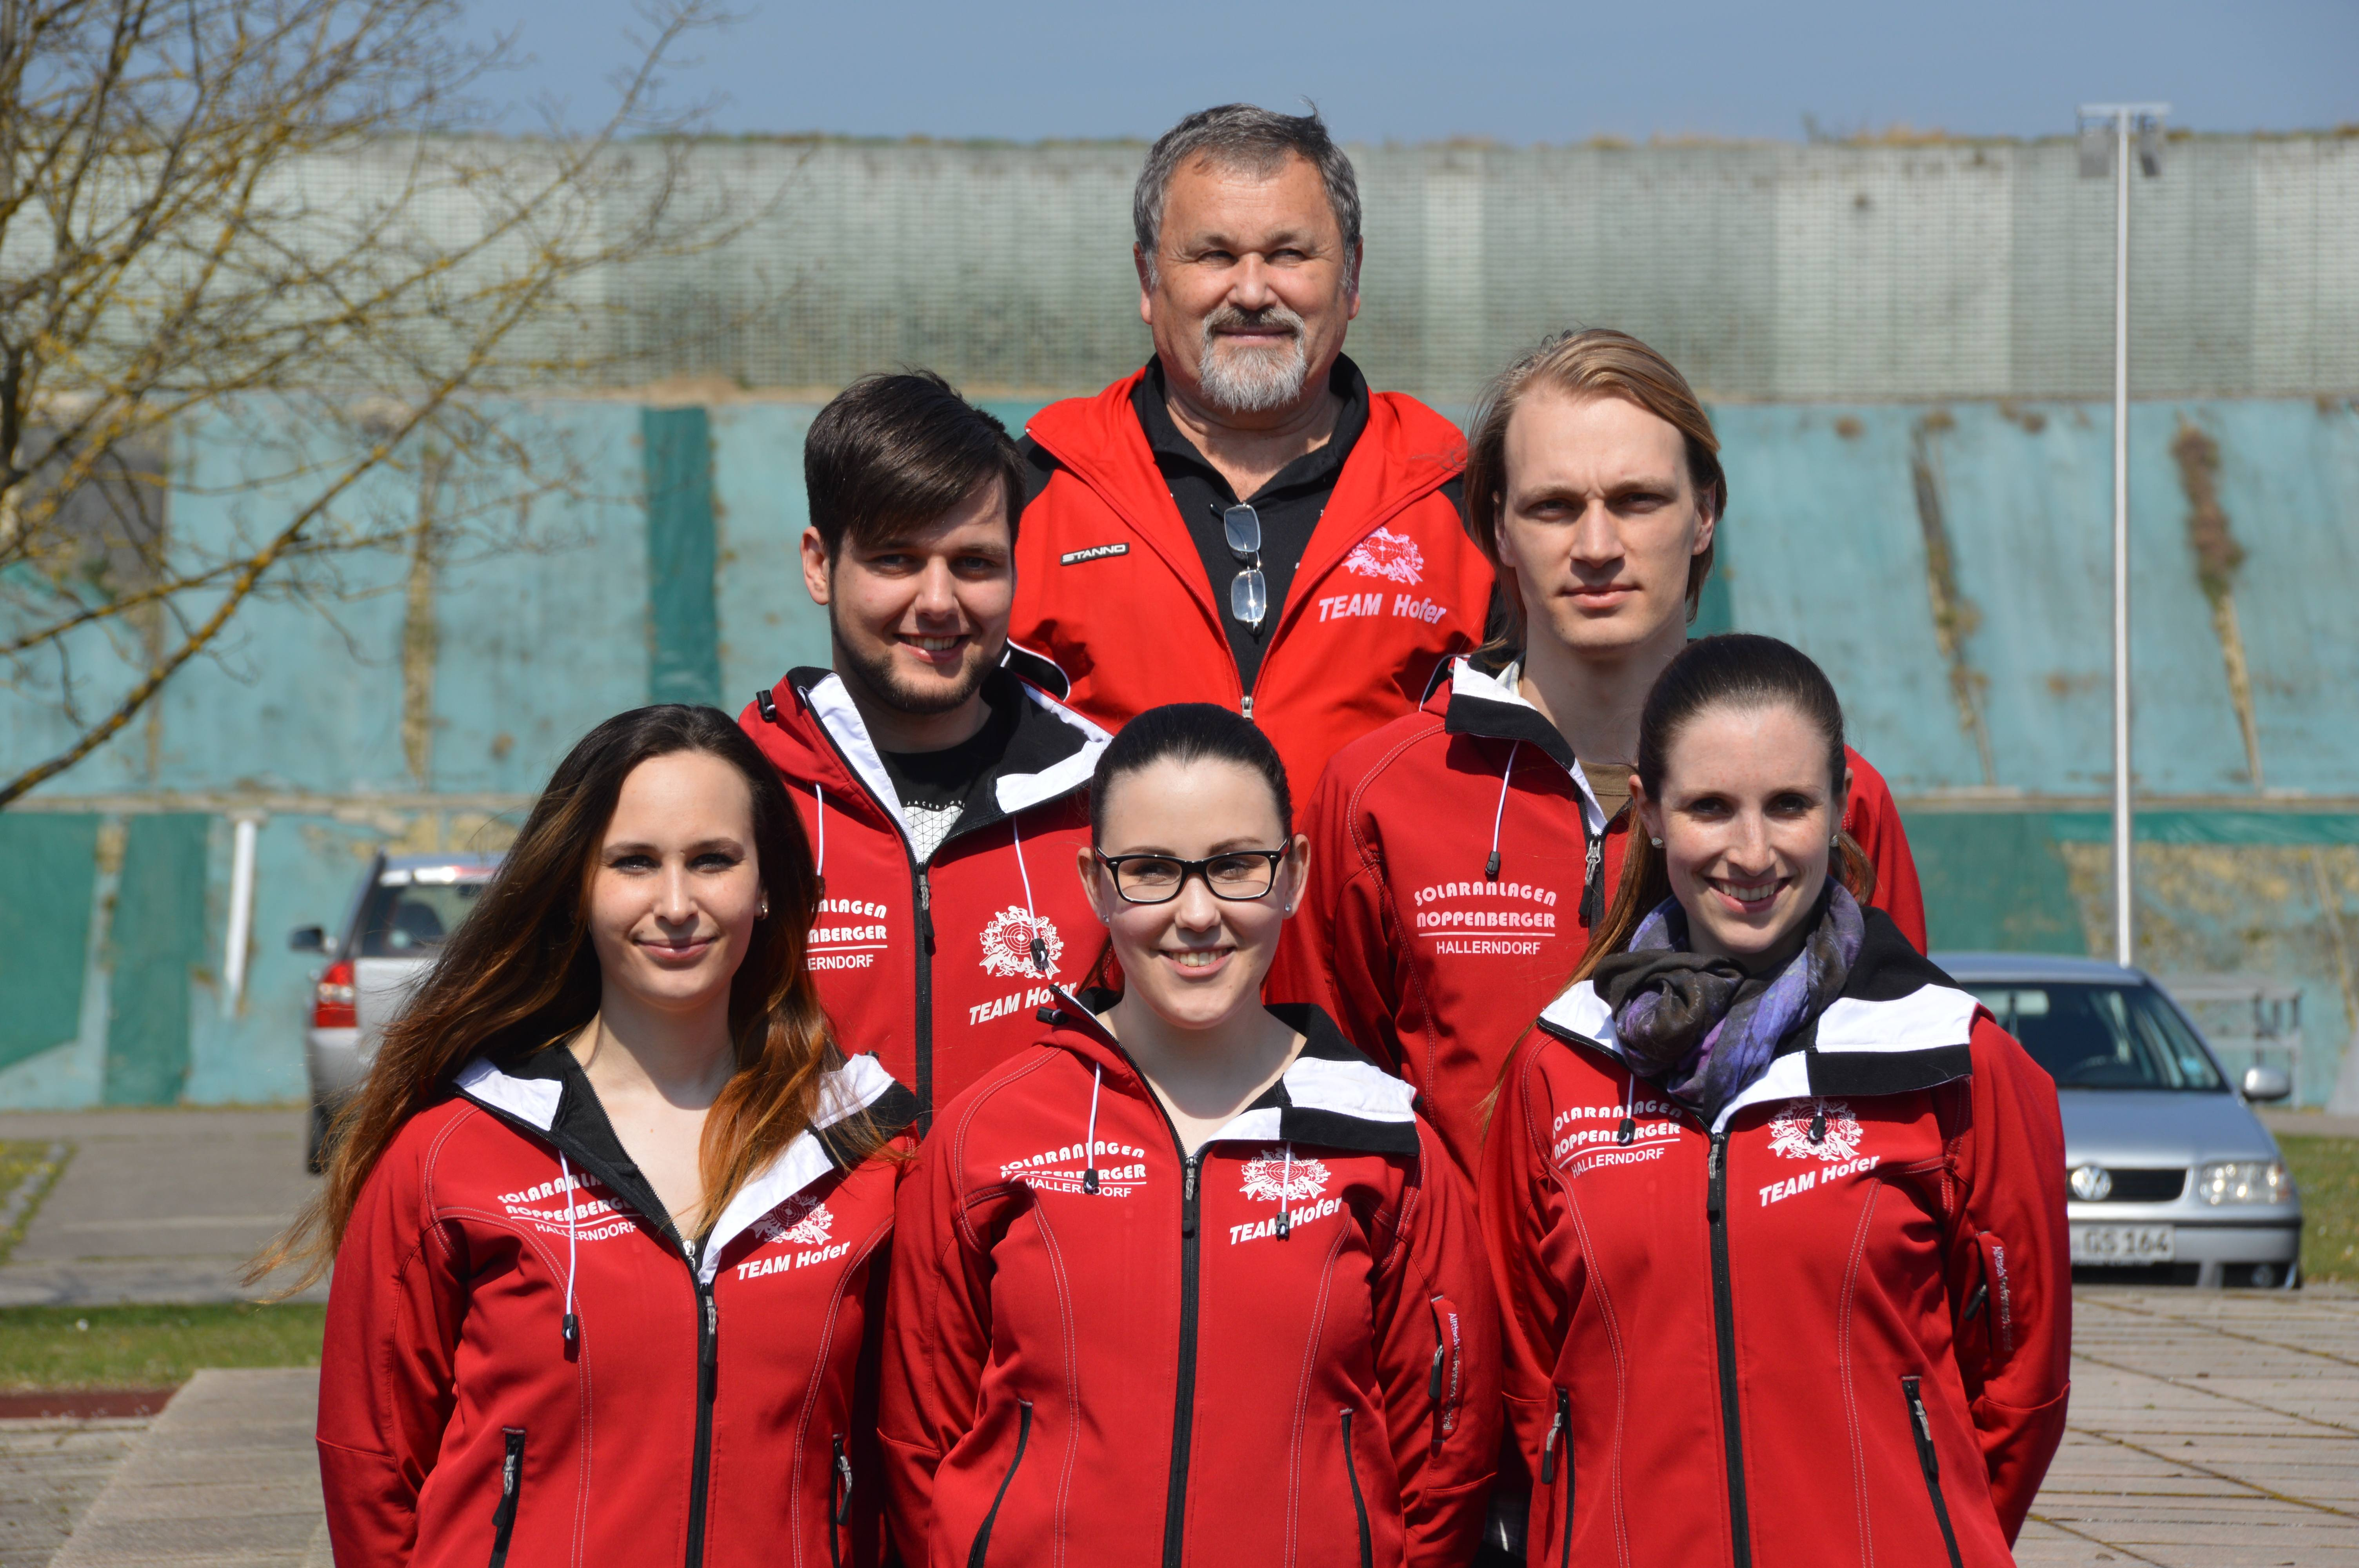 Strahlende Gesichter auf dem Siegerpodest der Olympiaschießanlage  in München-Hochbrück. Von links: Stephanie Friedel, Christian Holland, Lena Friedel, Trainer Peter Friedel, Sebastian Drawert u. Julia Lochau.